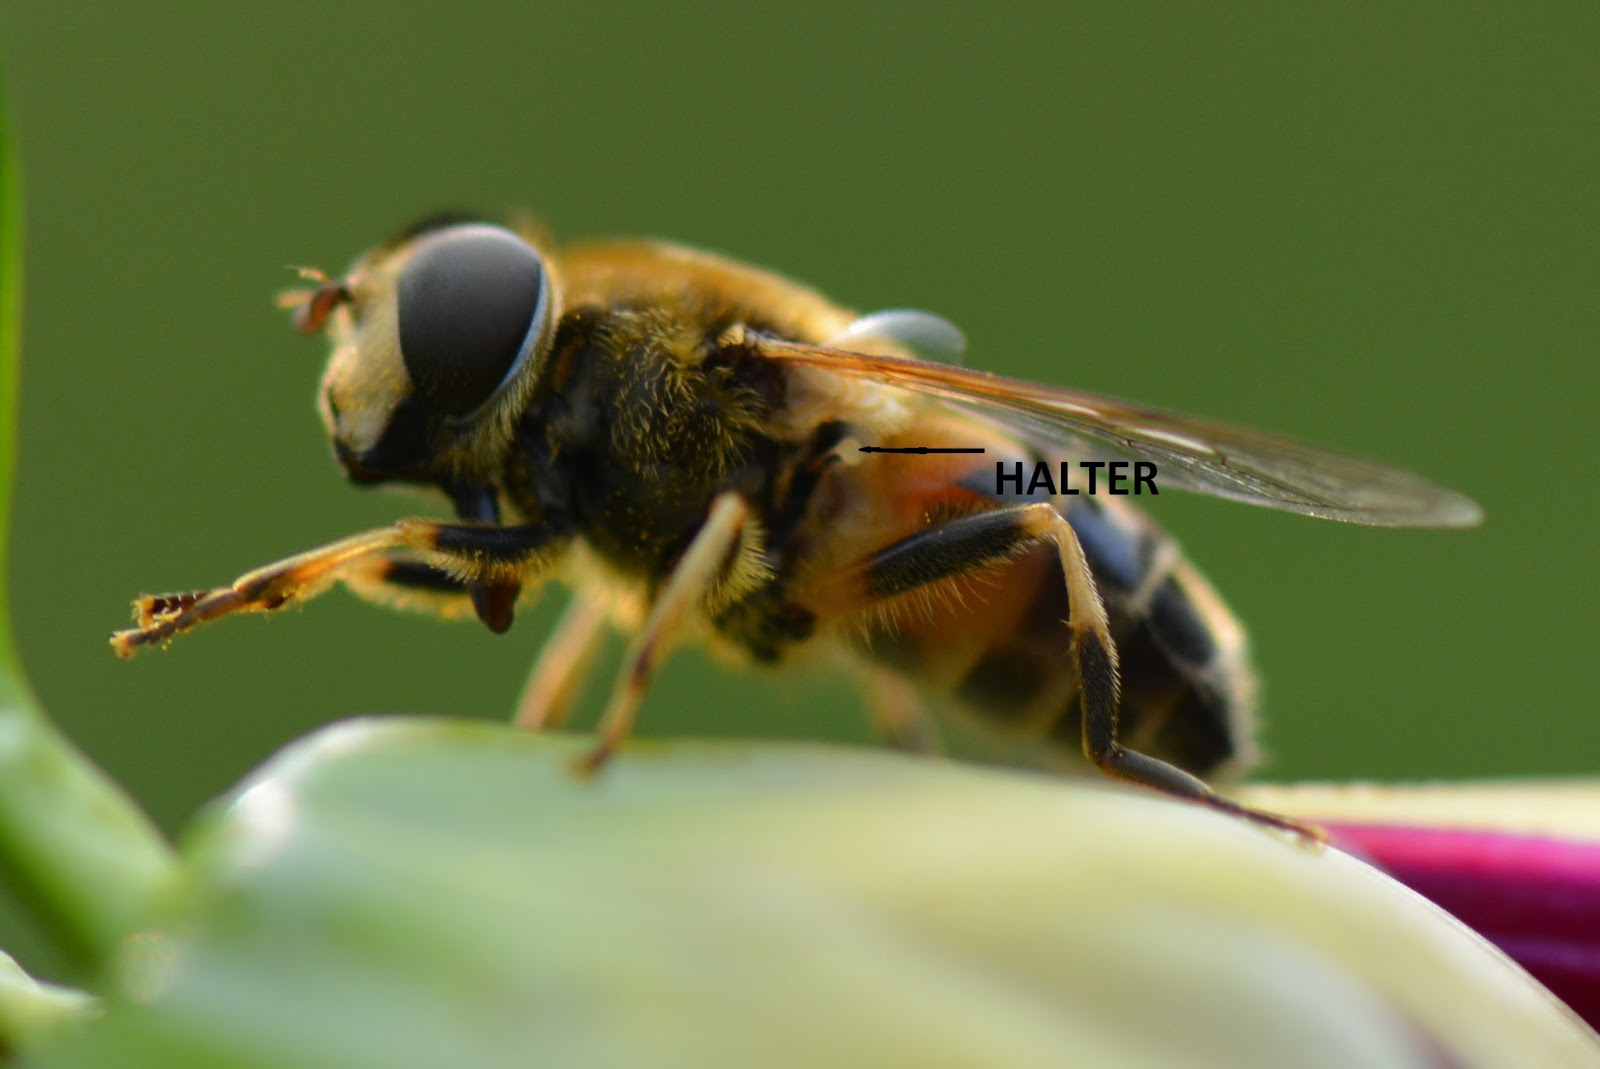 Picture of a bee halter.